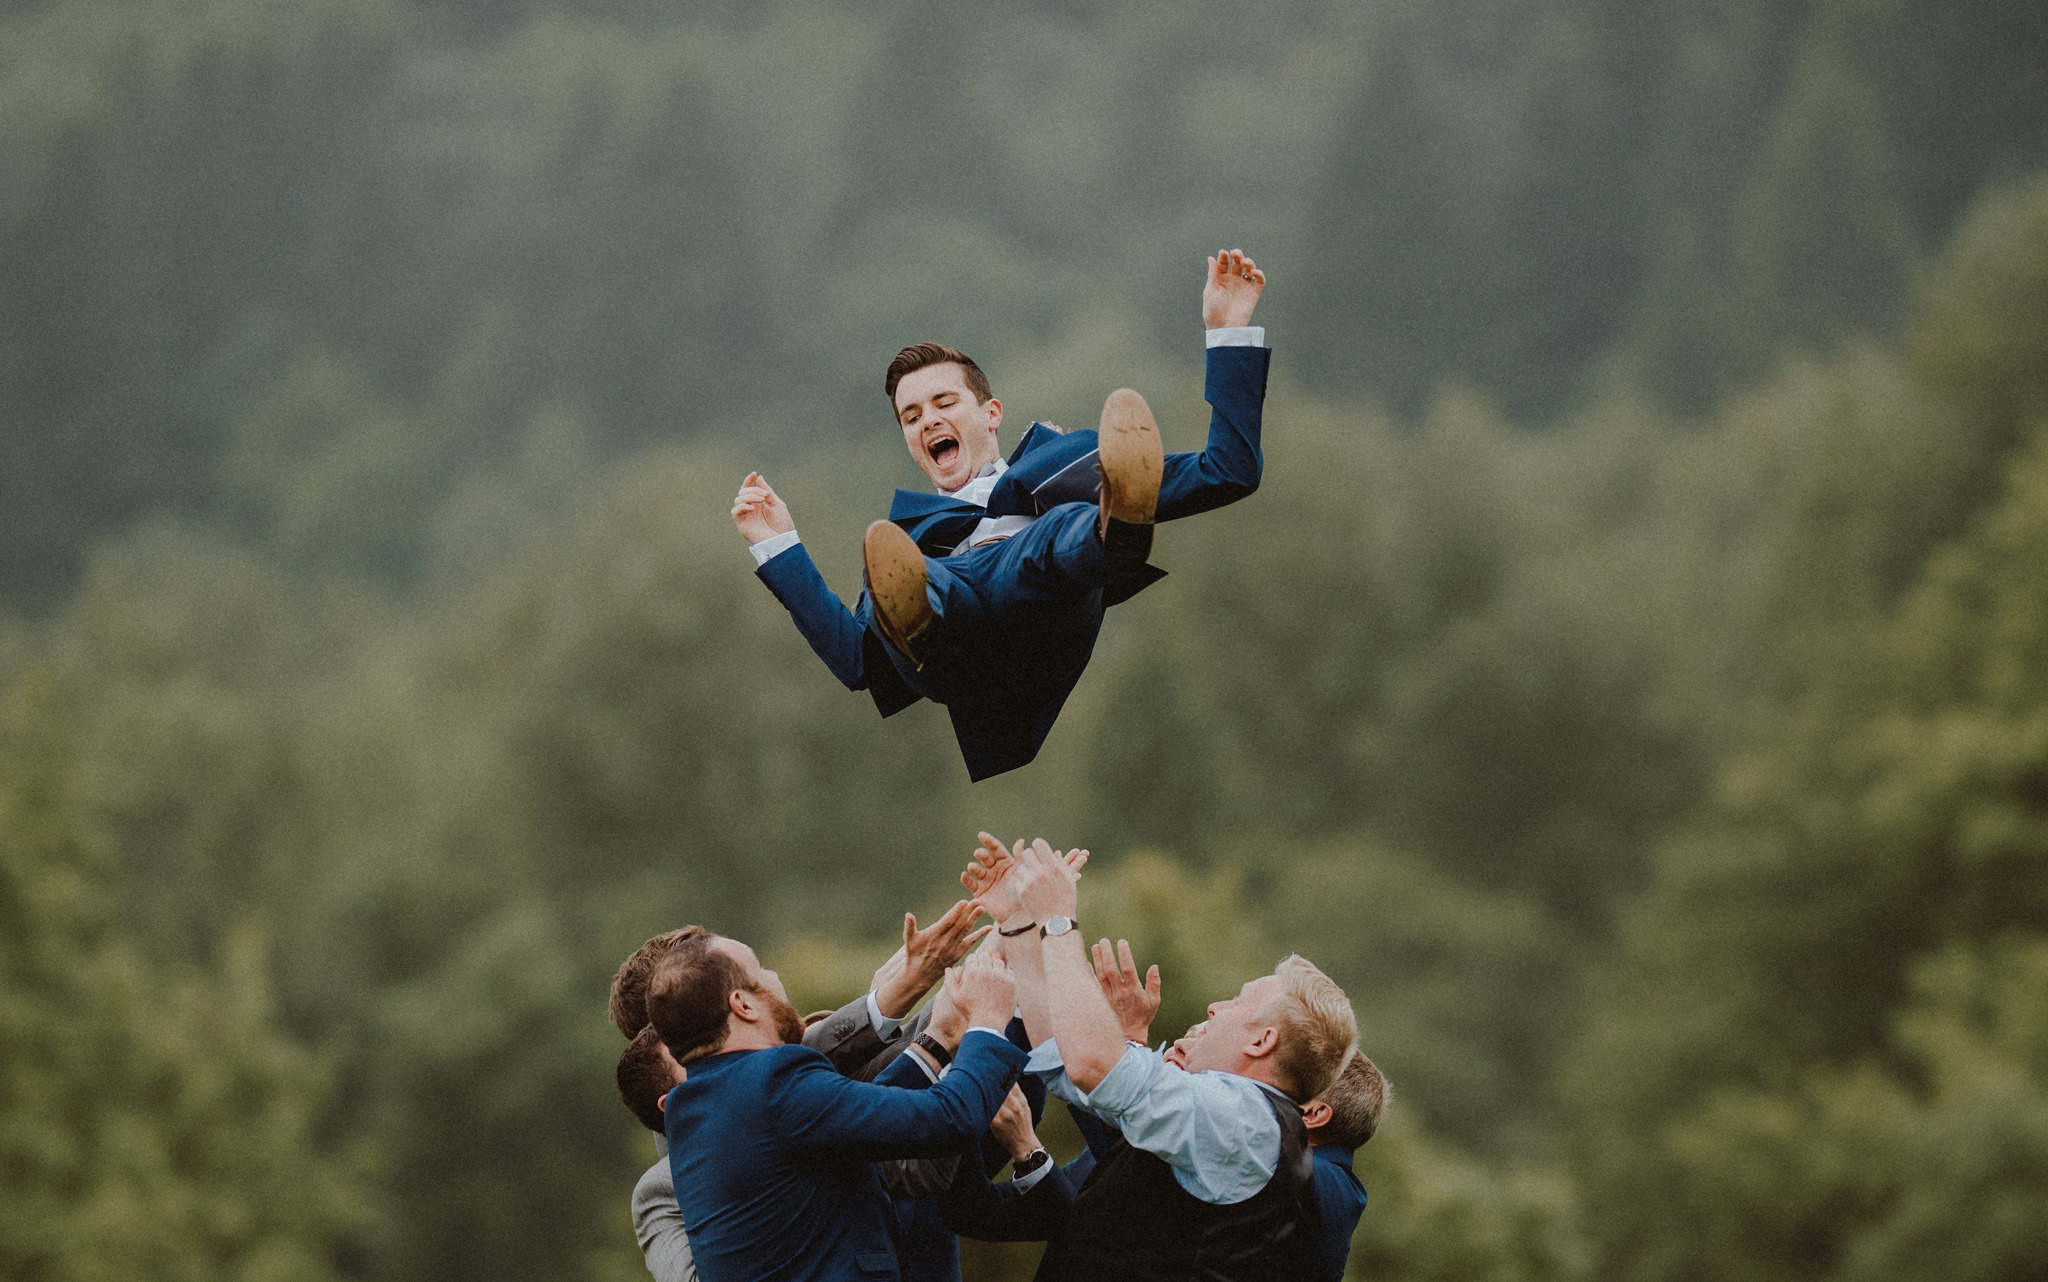 The groomsmen throwing the groom into the air| Smiles and full of laughter| Fun Wedding moments